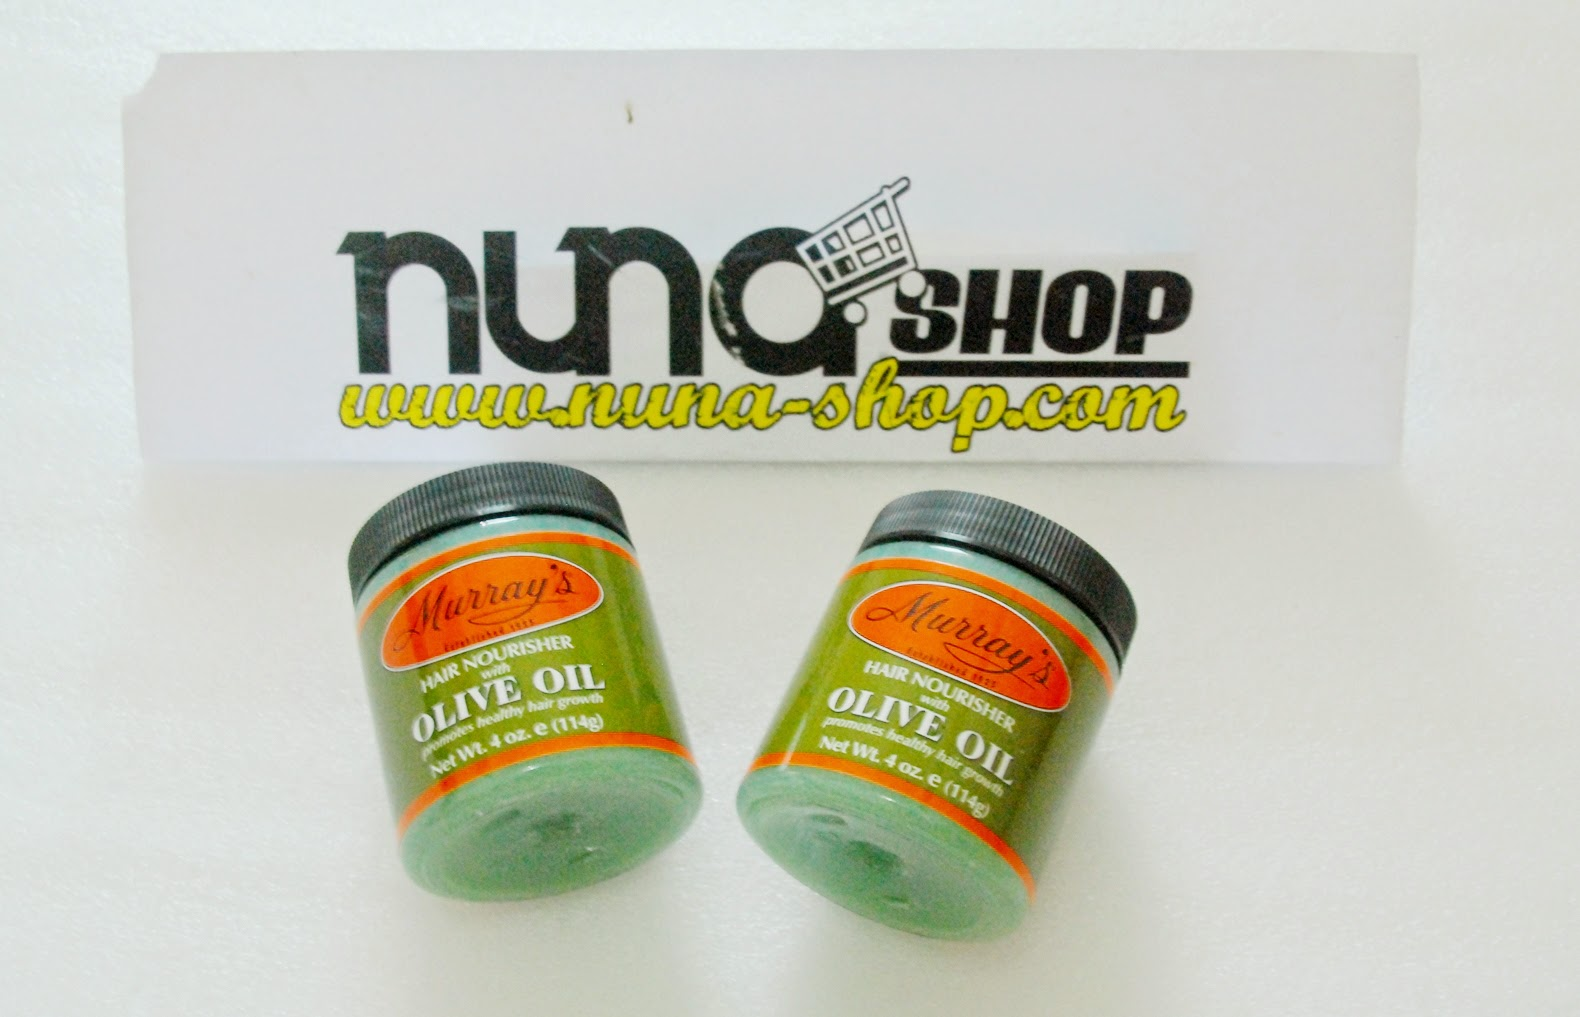 Online Shop Jual Murray's Hair Nourisher with Olive Oil